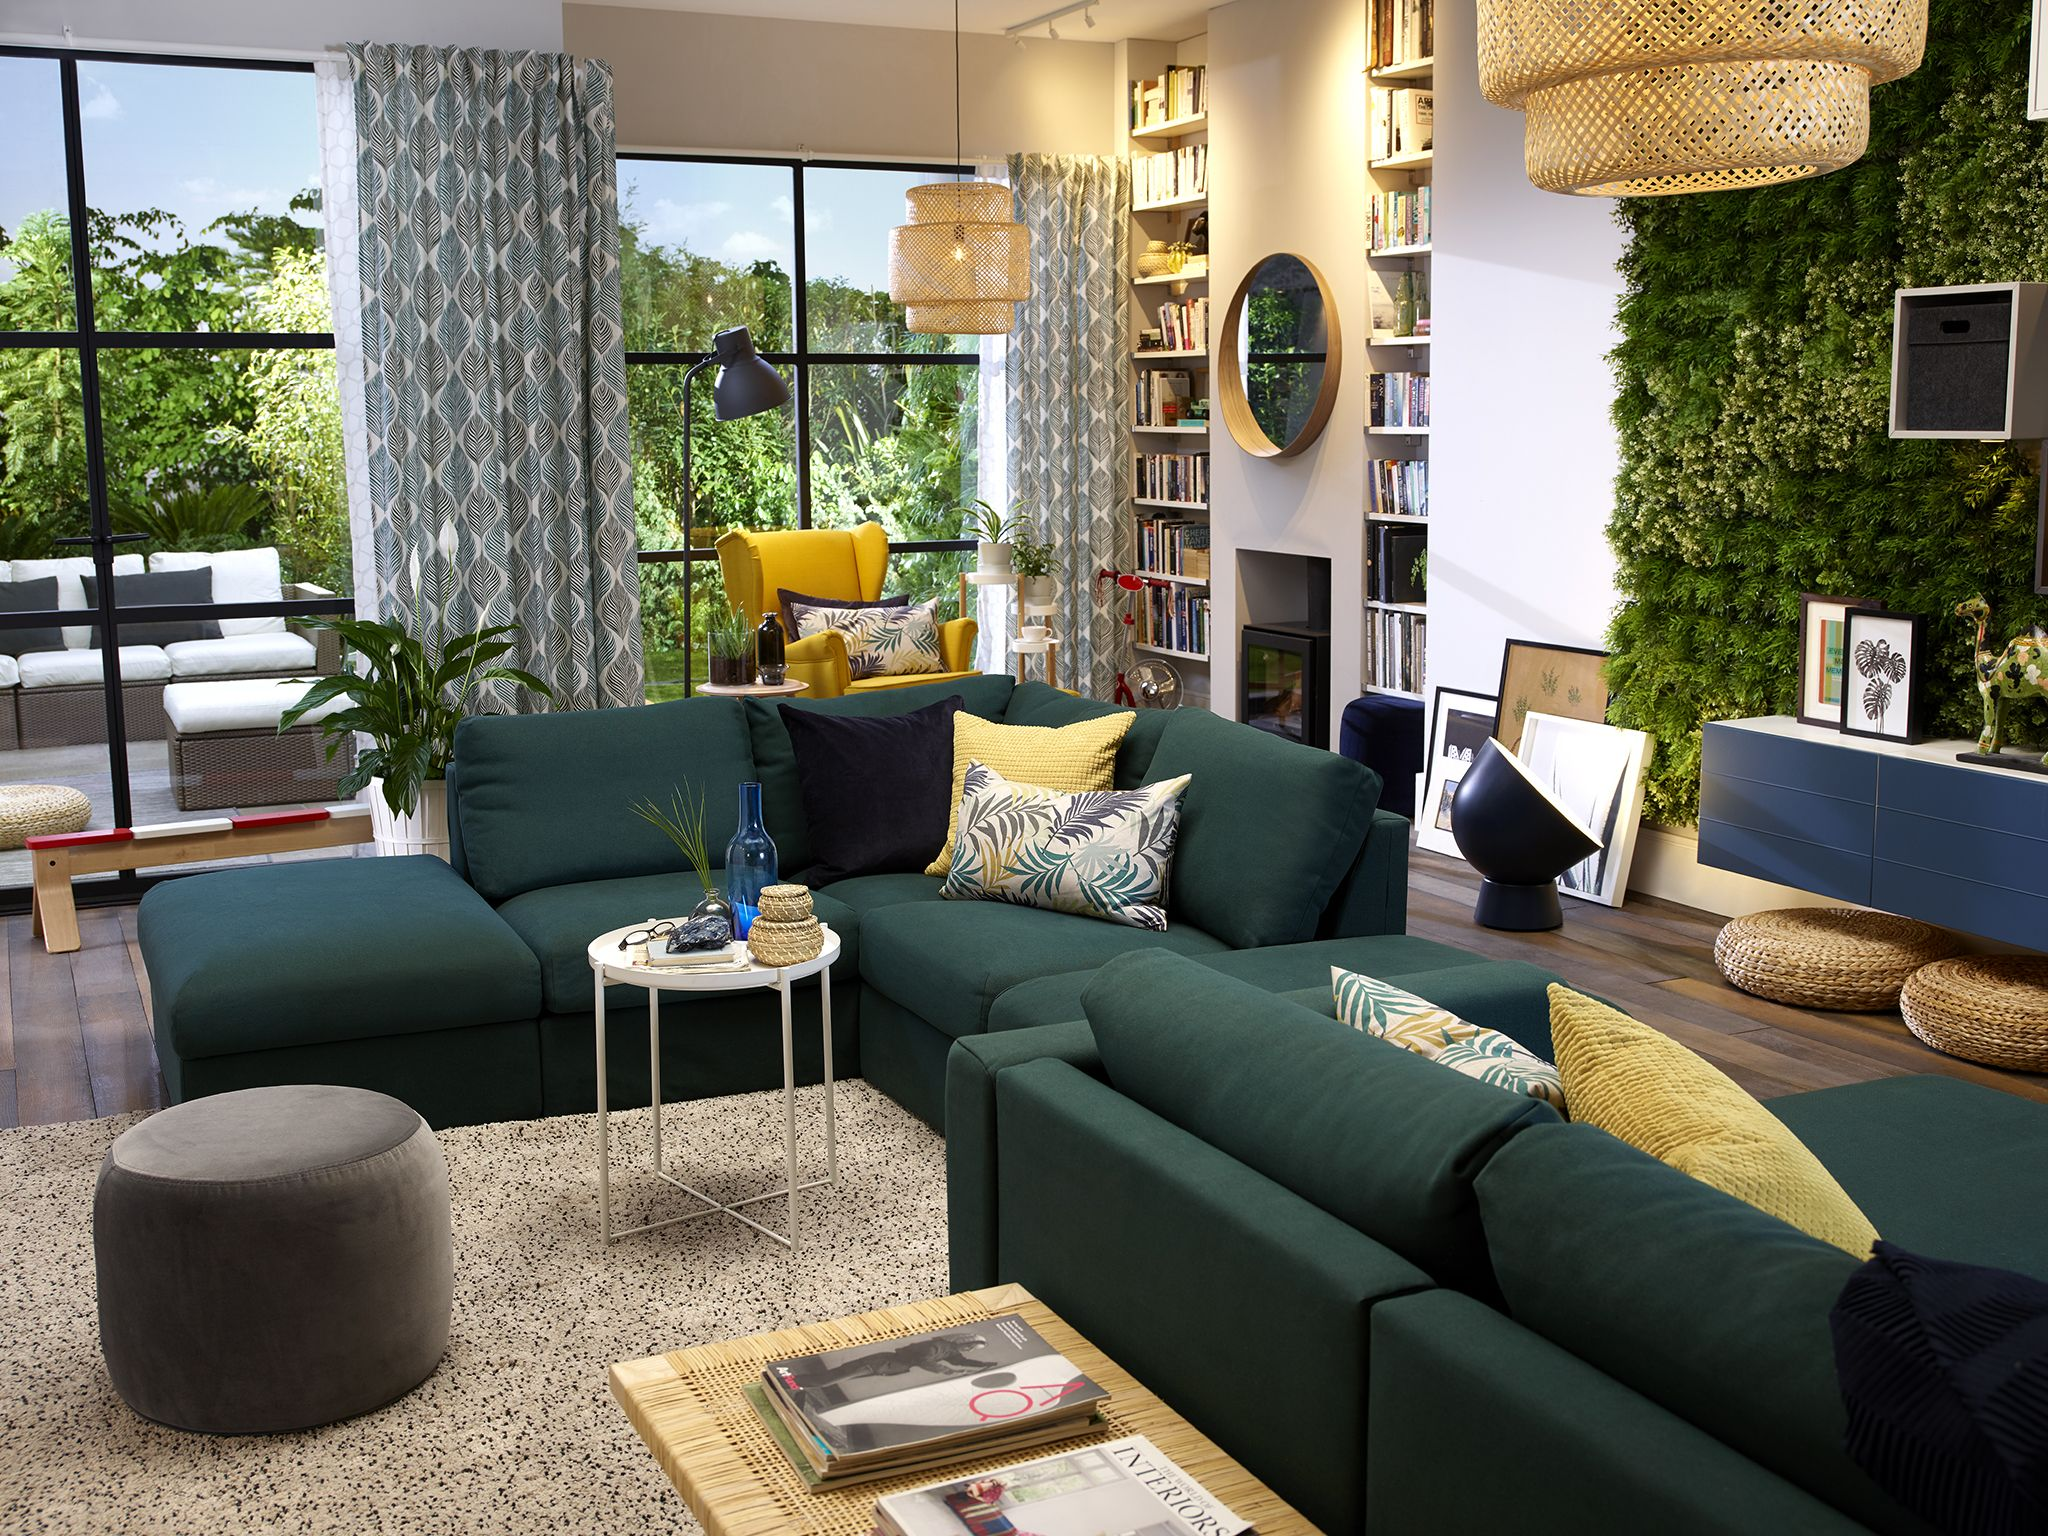 Meuble Living Ikea Image Result For Ikea Vimle Sofa Green Living Room